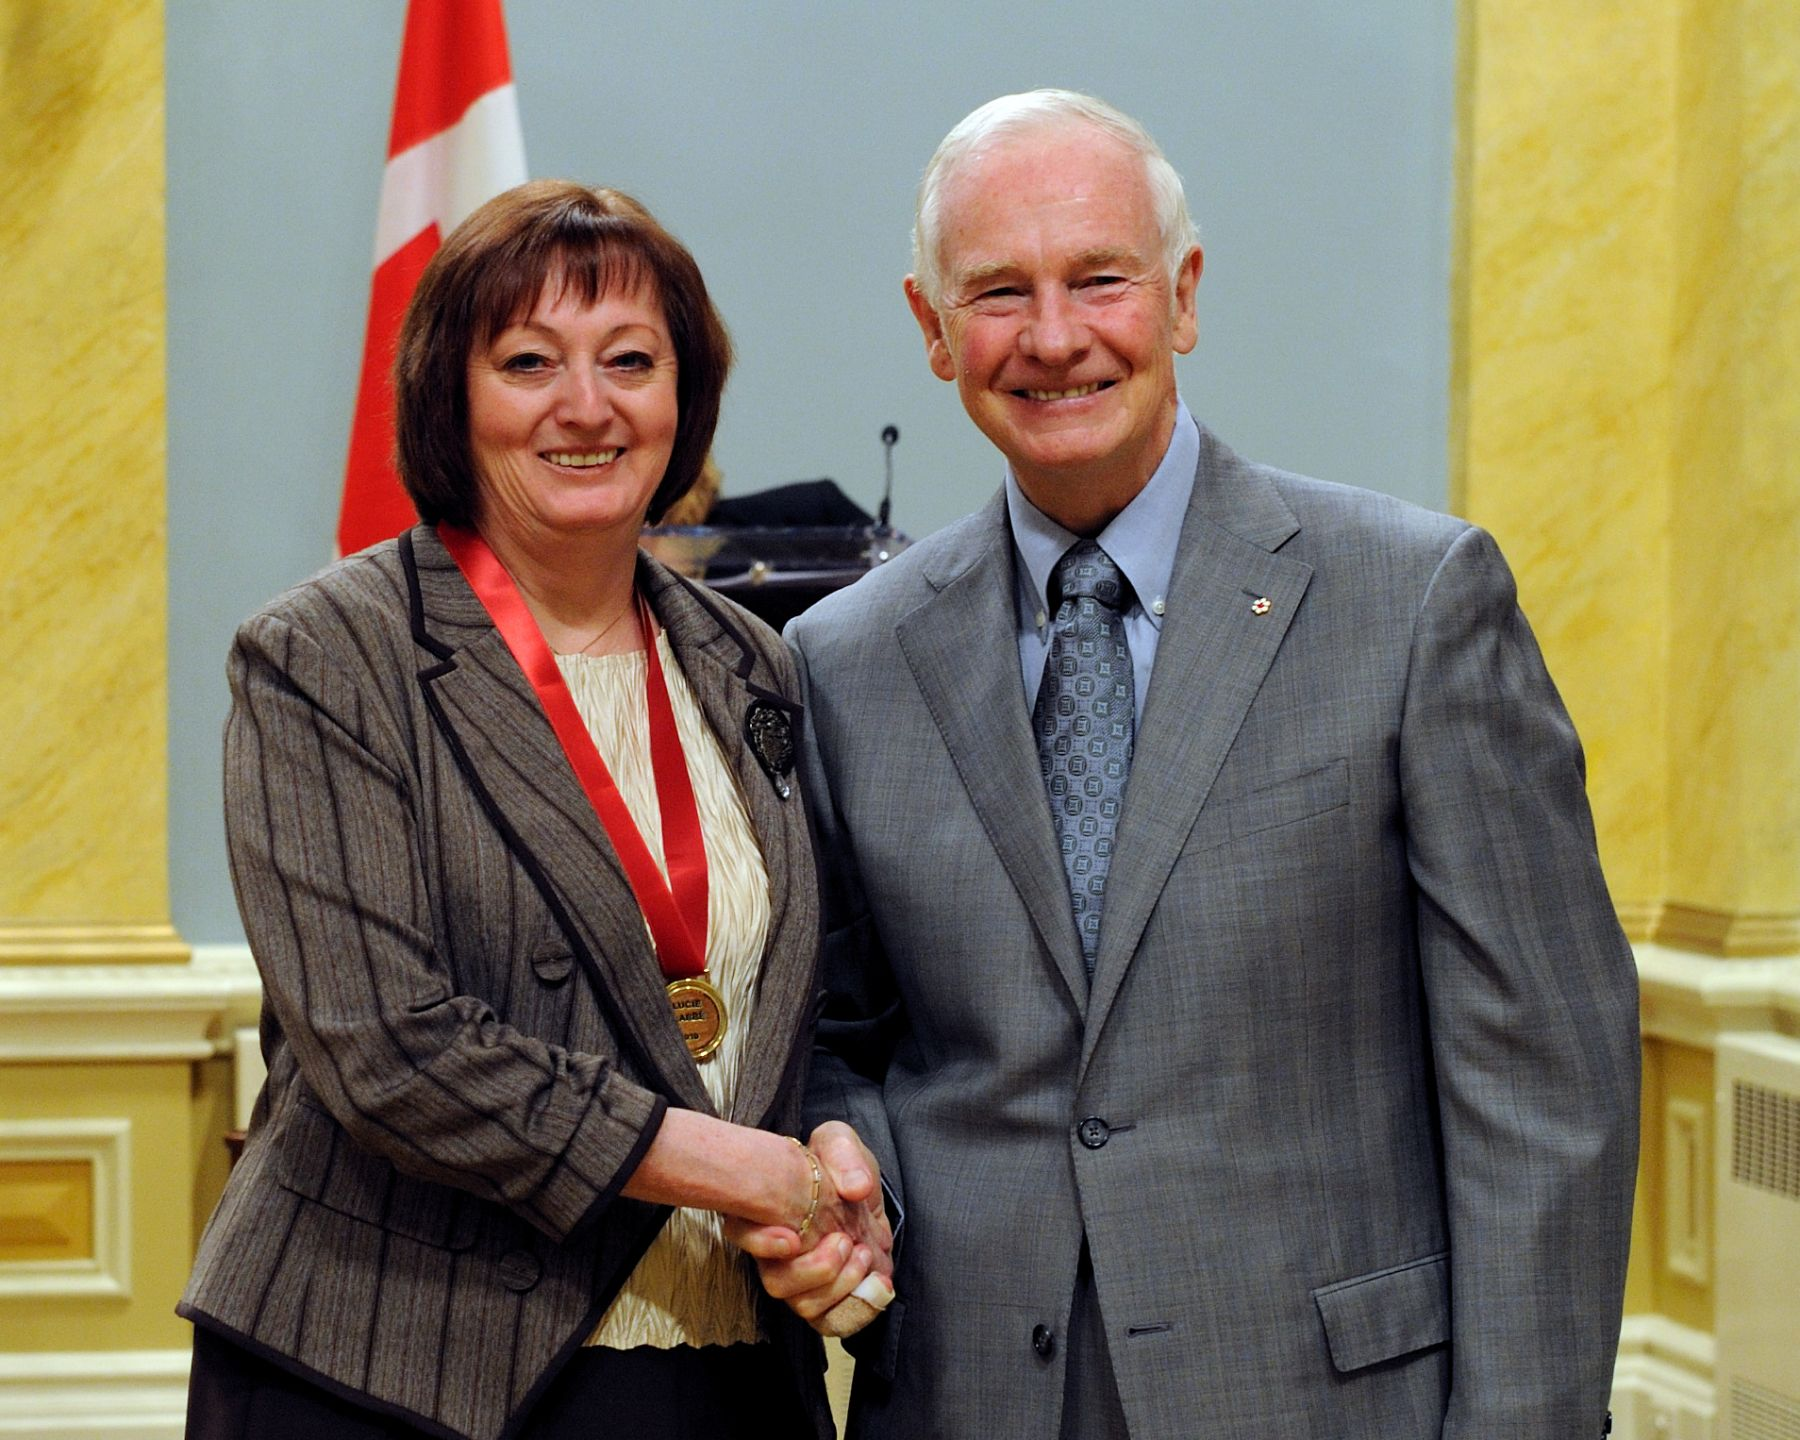 Mrs. Lucie Labbé received the Governor General's Award for Excellence in Teaching Canadian History from His Excellency.